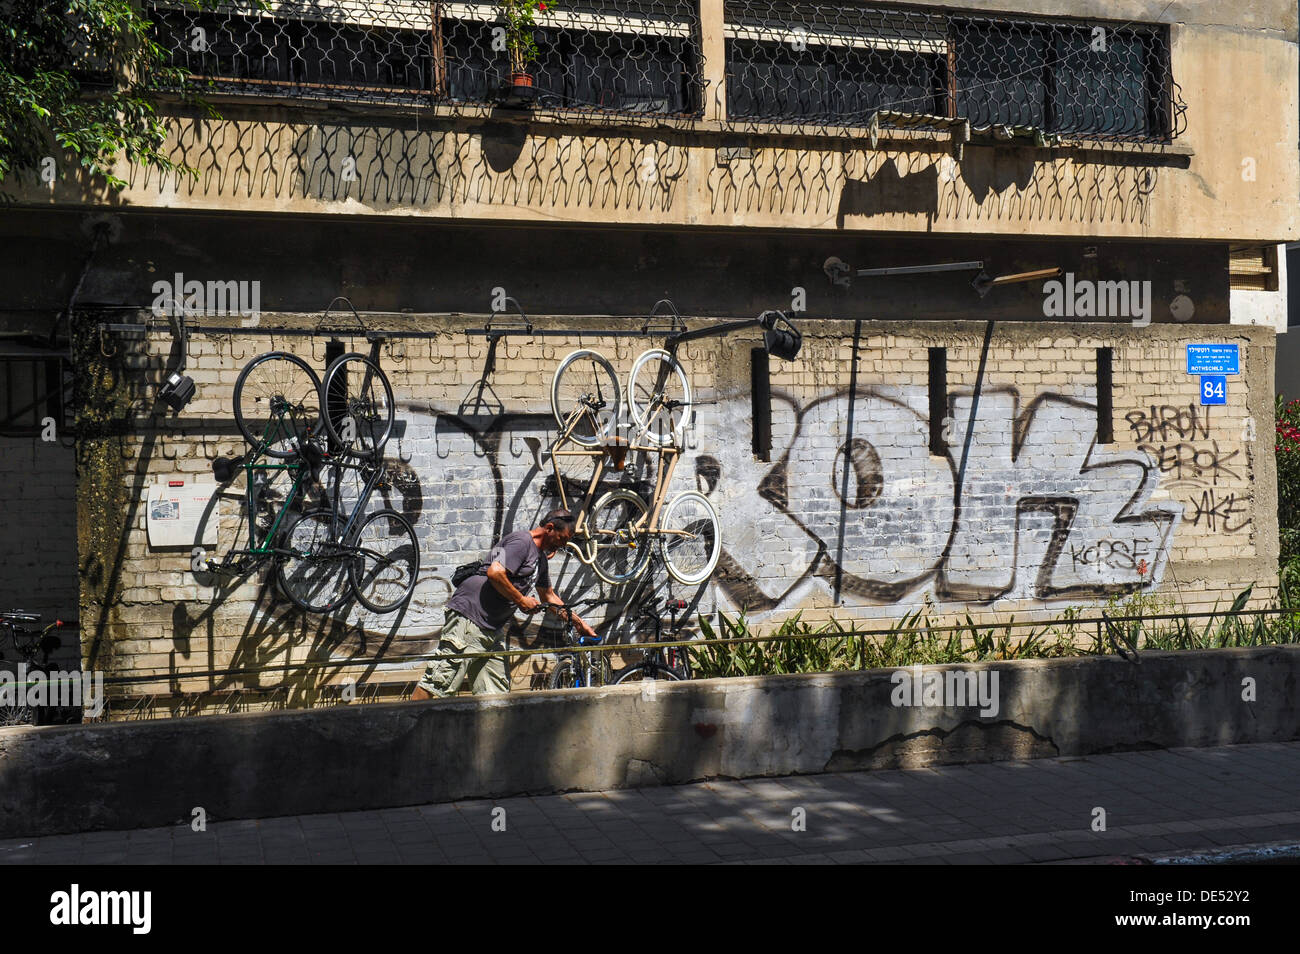 A bicycle shop owner in Rothschild Boulevard, Tel Aviv, Israel is removing a bike from a wall covered with graffiti - Stock Image